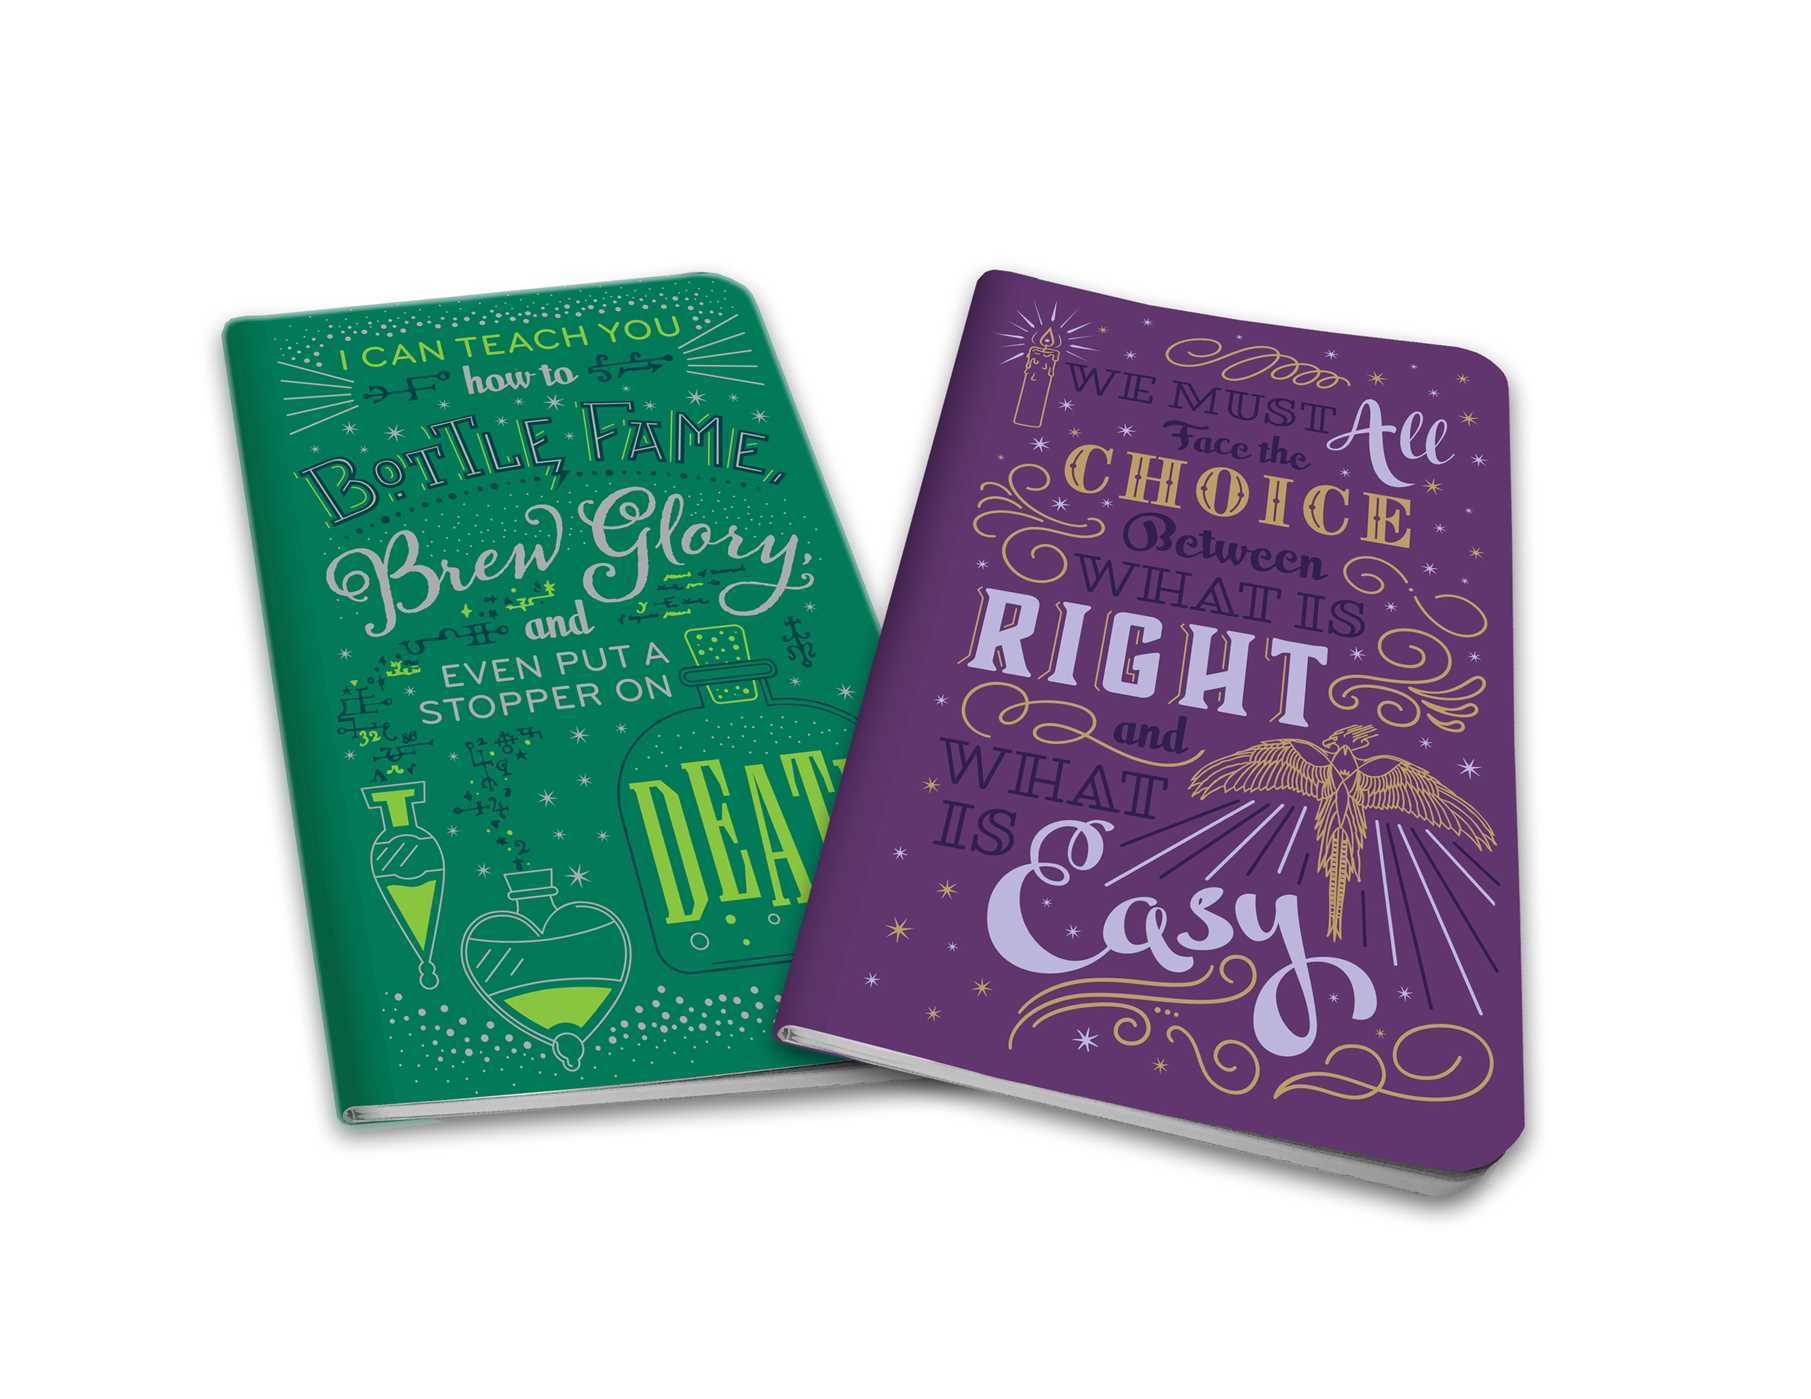 Harry Potter: Character Notebook Collection (Set of 2): Dumbledore and Snape